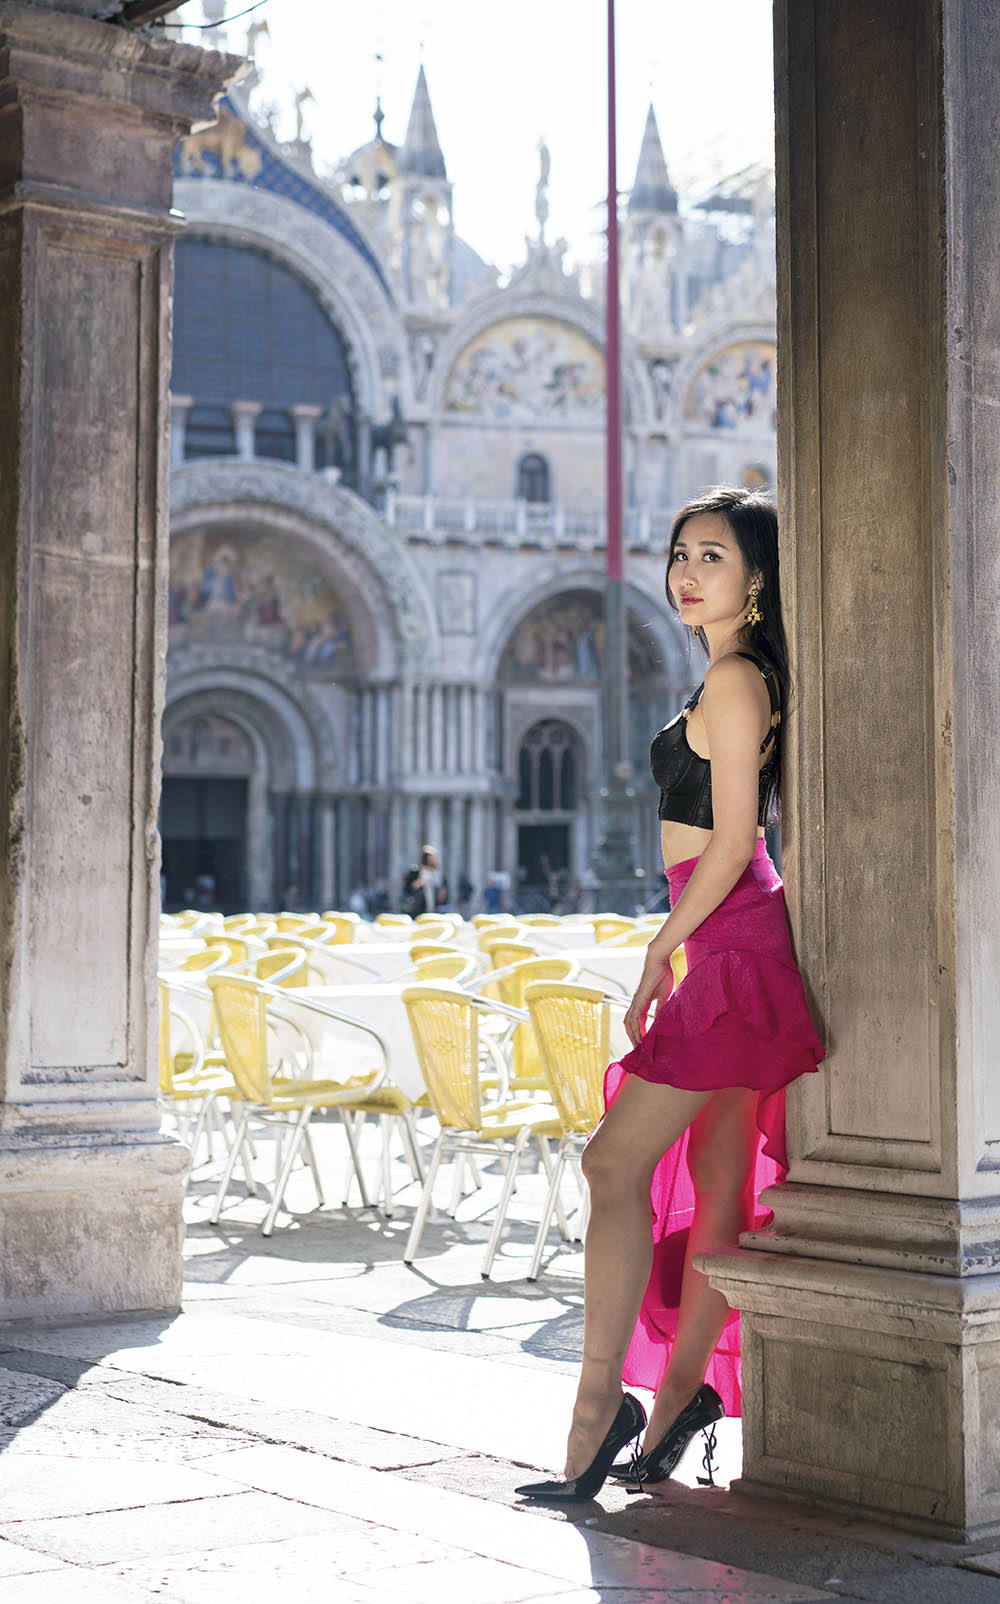 Black Bralette & Pink Ruffle Skirt at Piazza San Marco, Venice, Italy | Of Leather and Lace